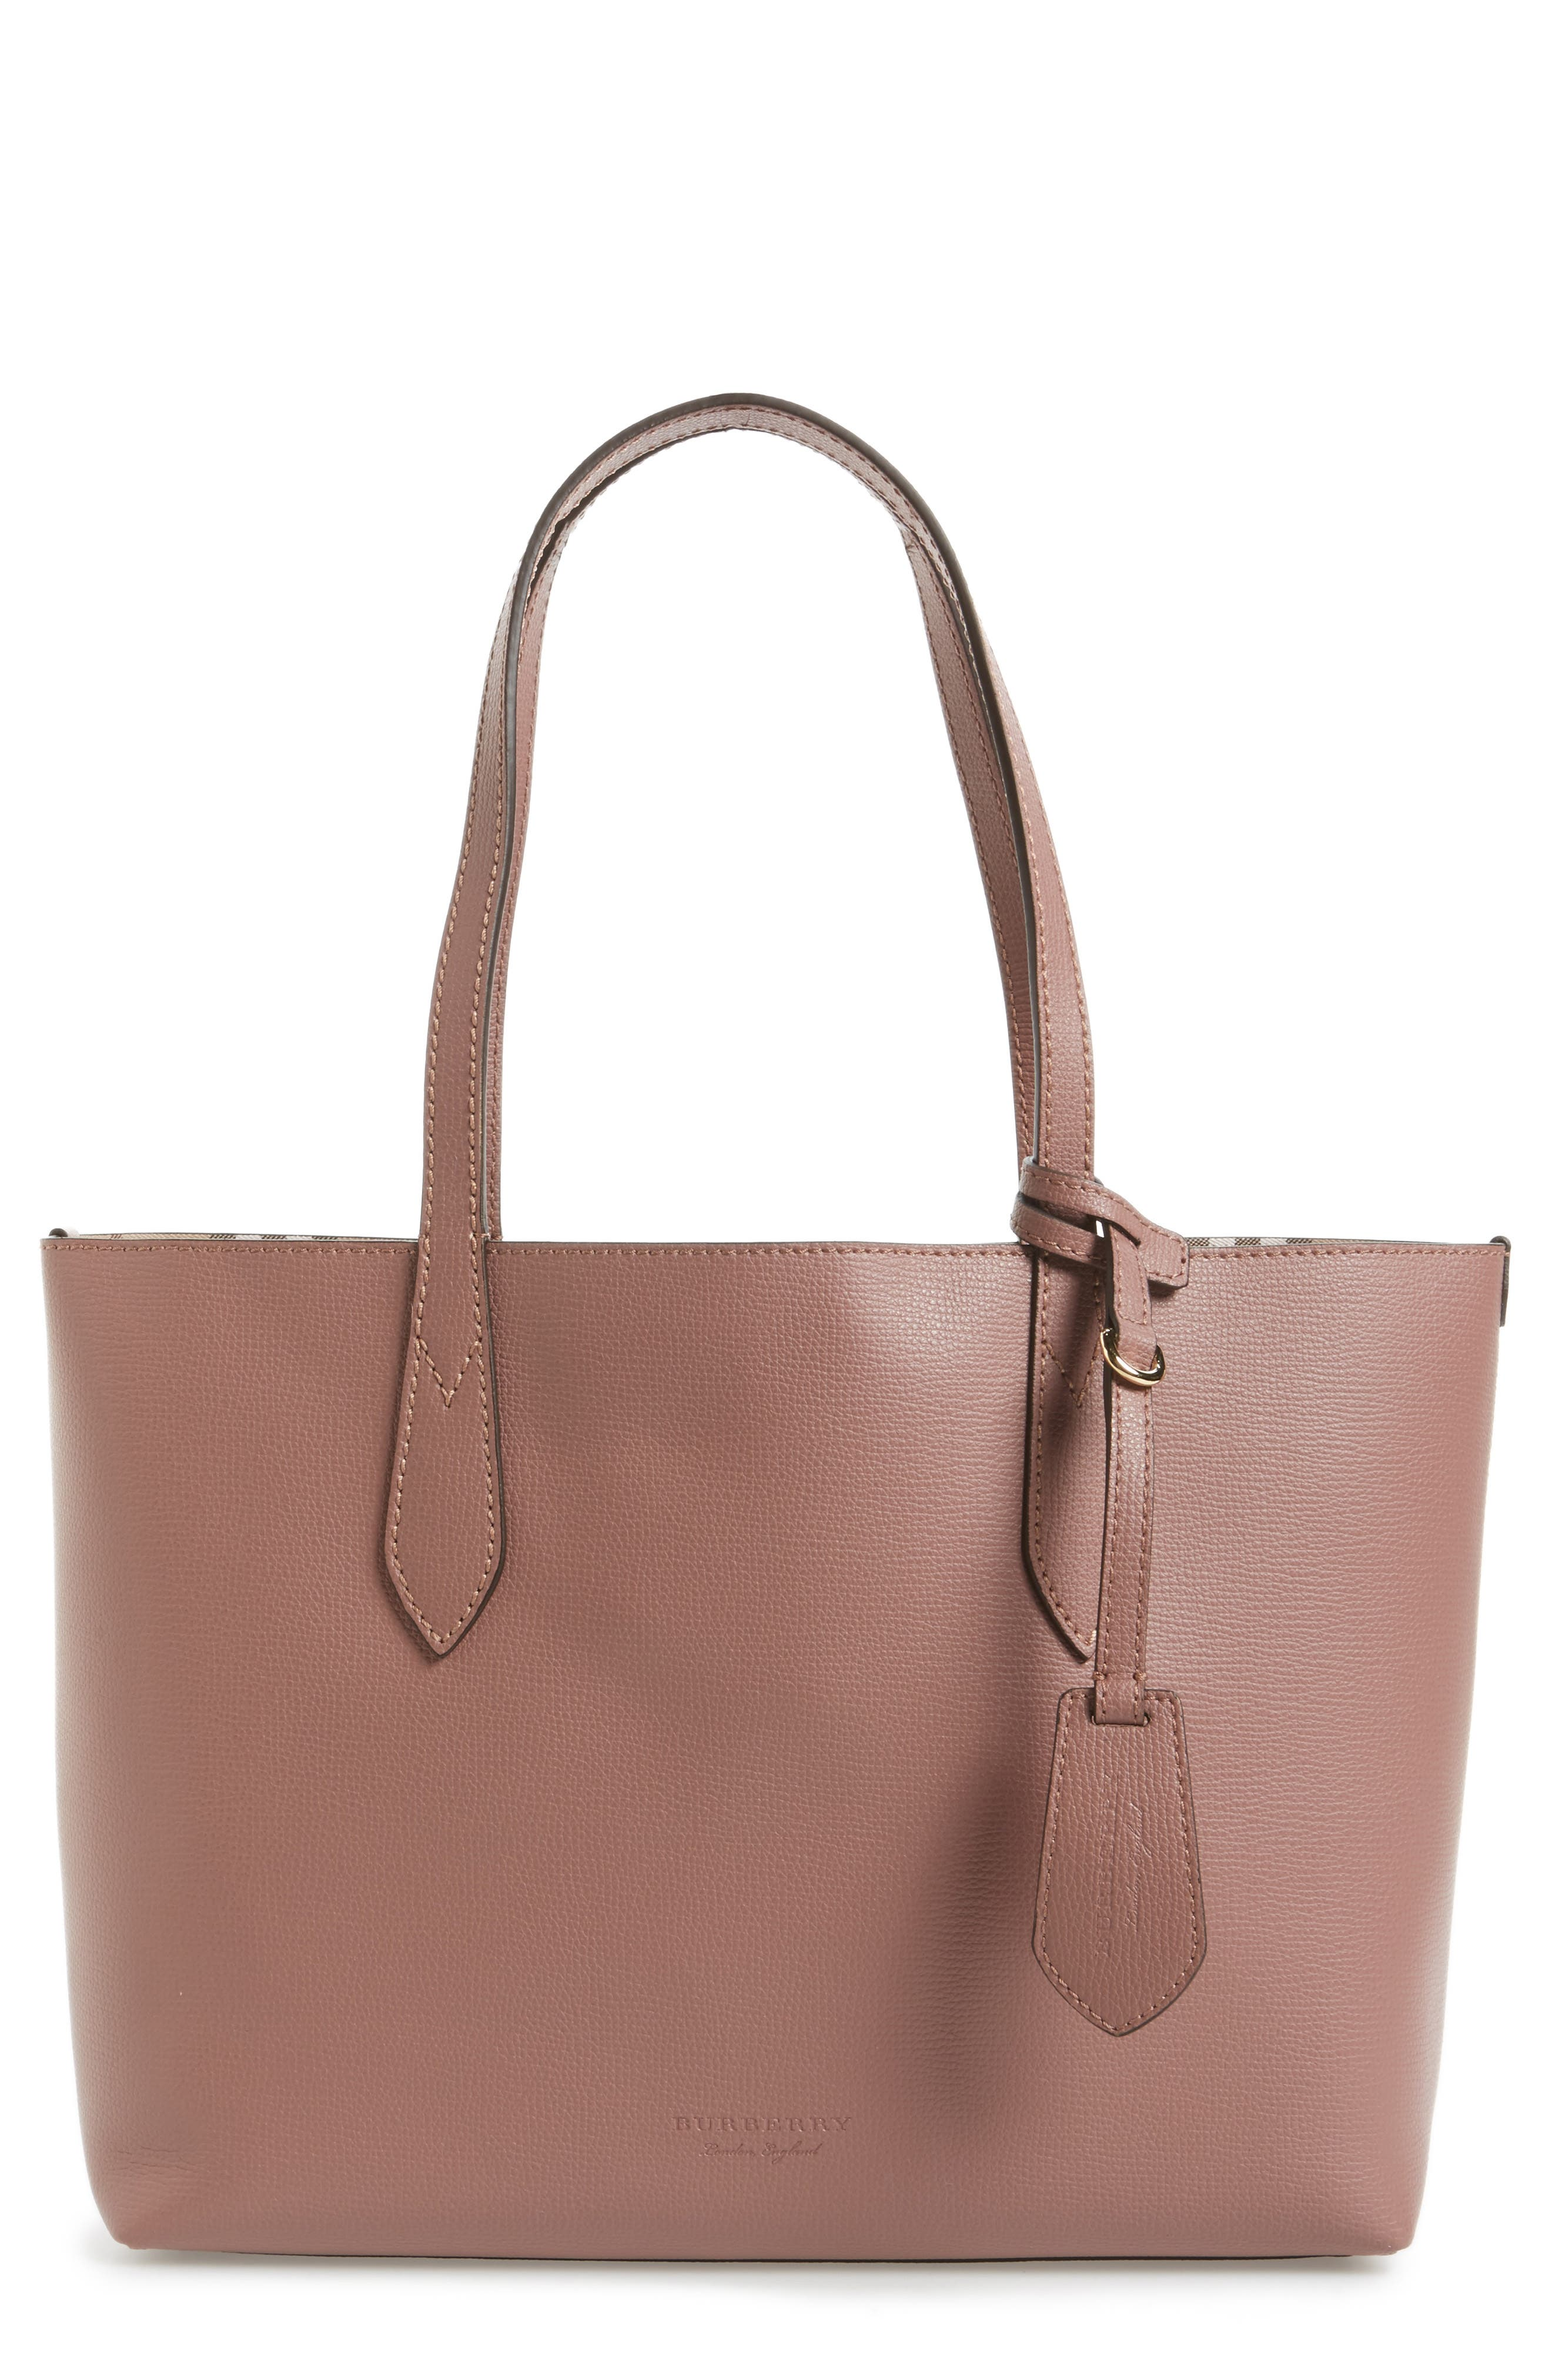 Main Image - Burberry Small Reversible Haymarket Check & Leather Tote